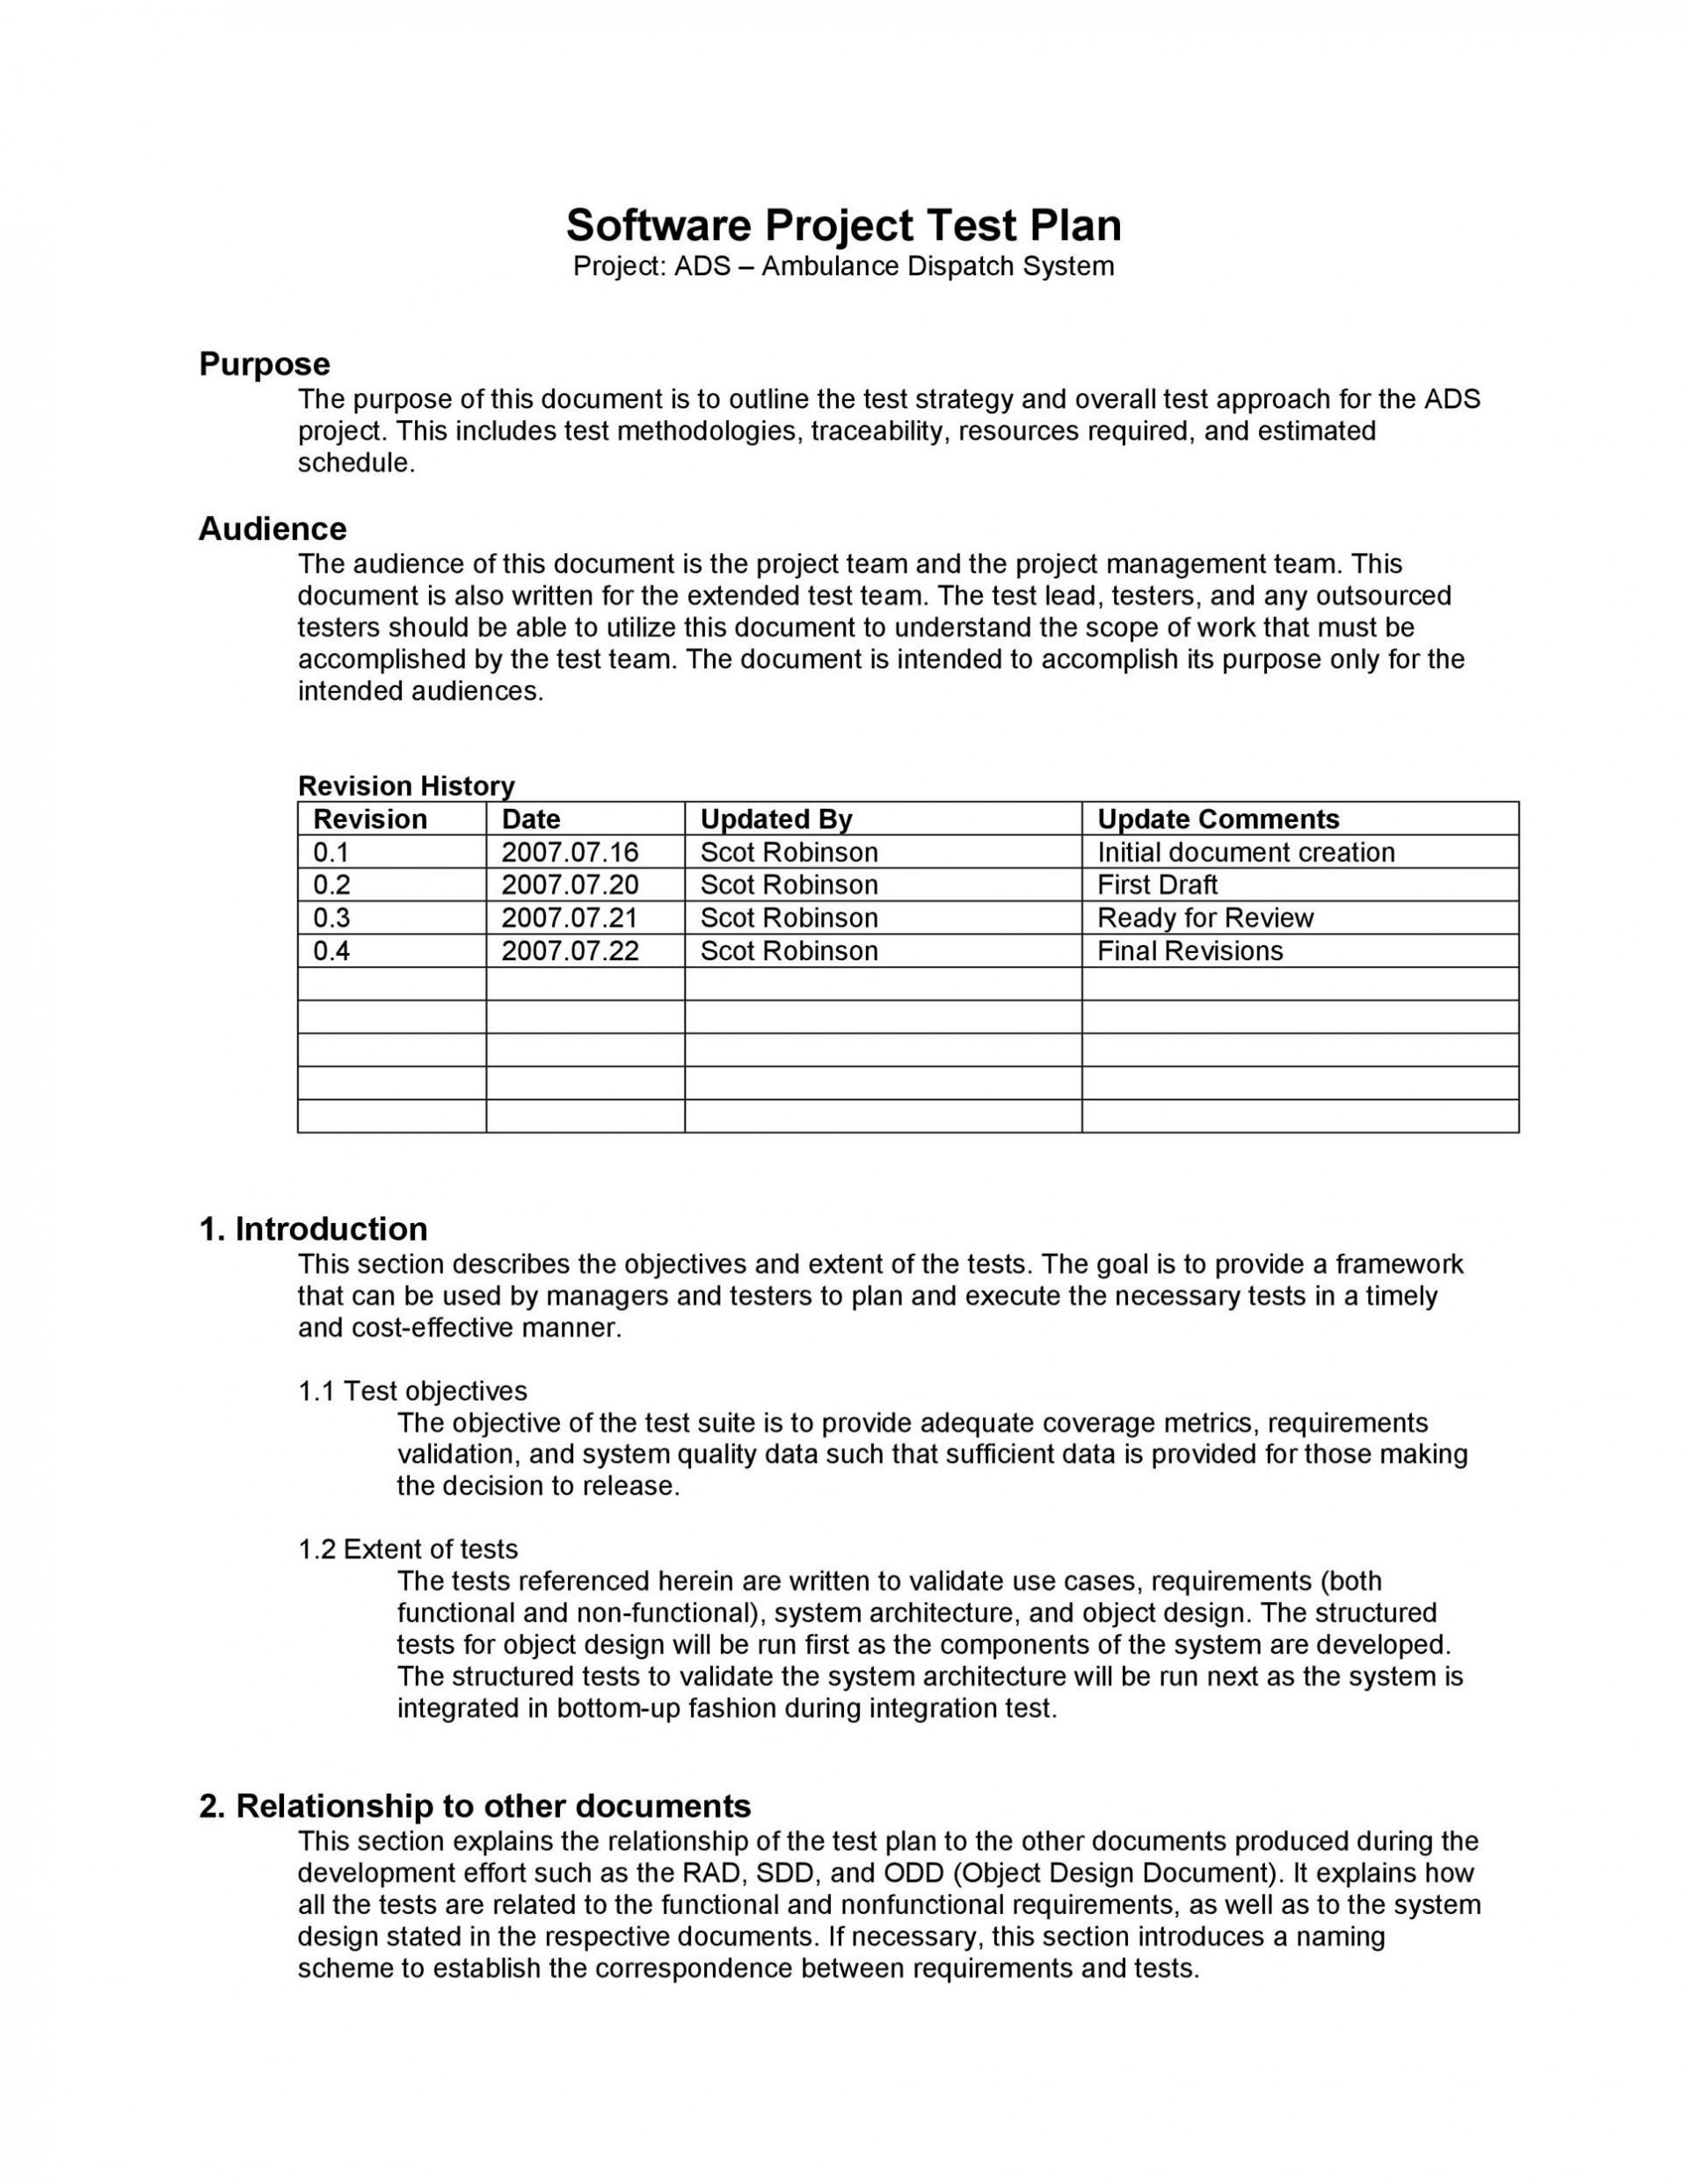 007 Unforgettable Software Testing Plan Template Image  Test Agile Unit Example Pdf1920